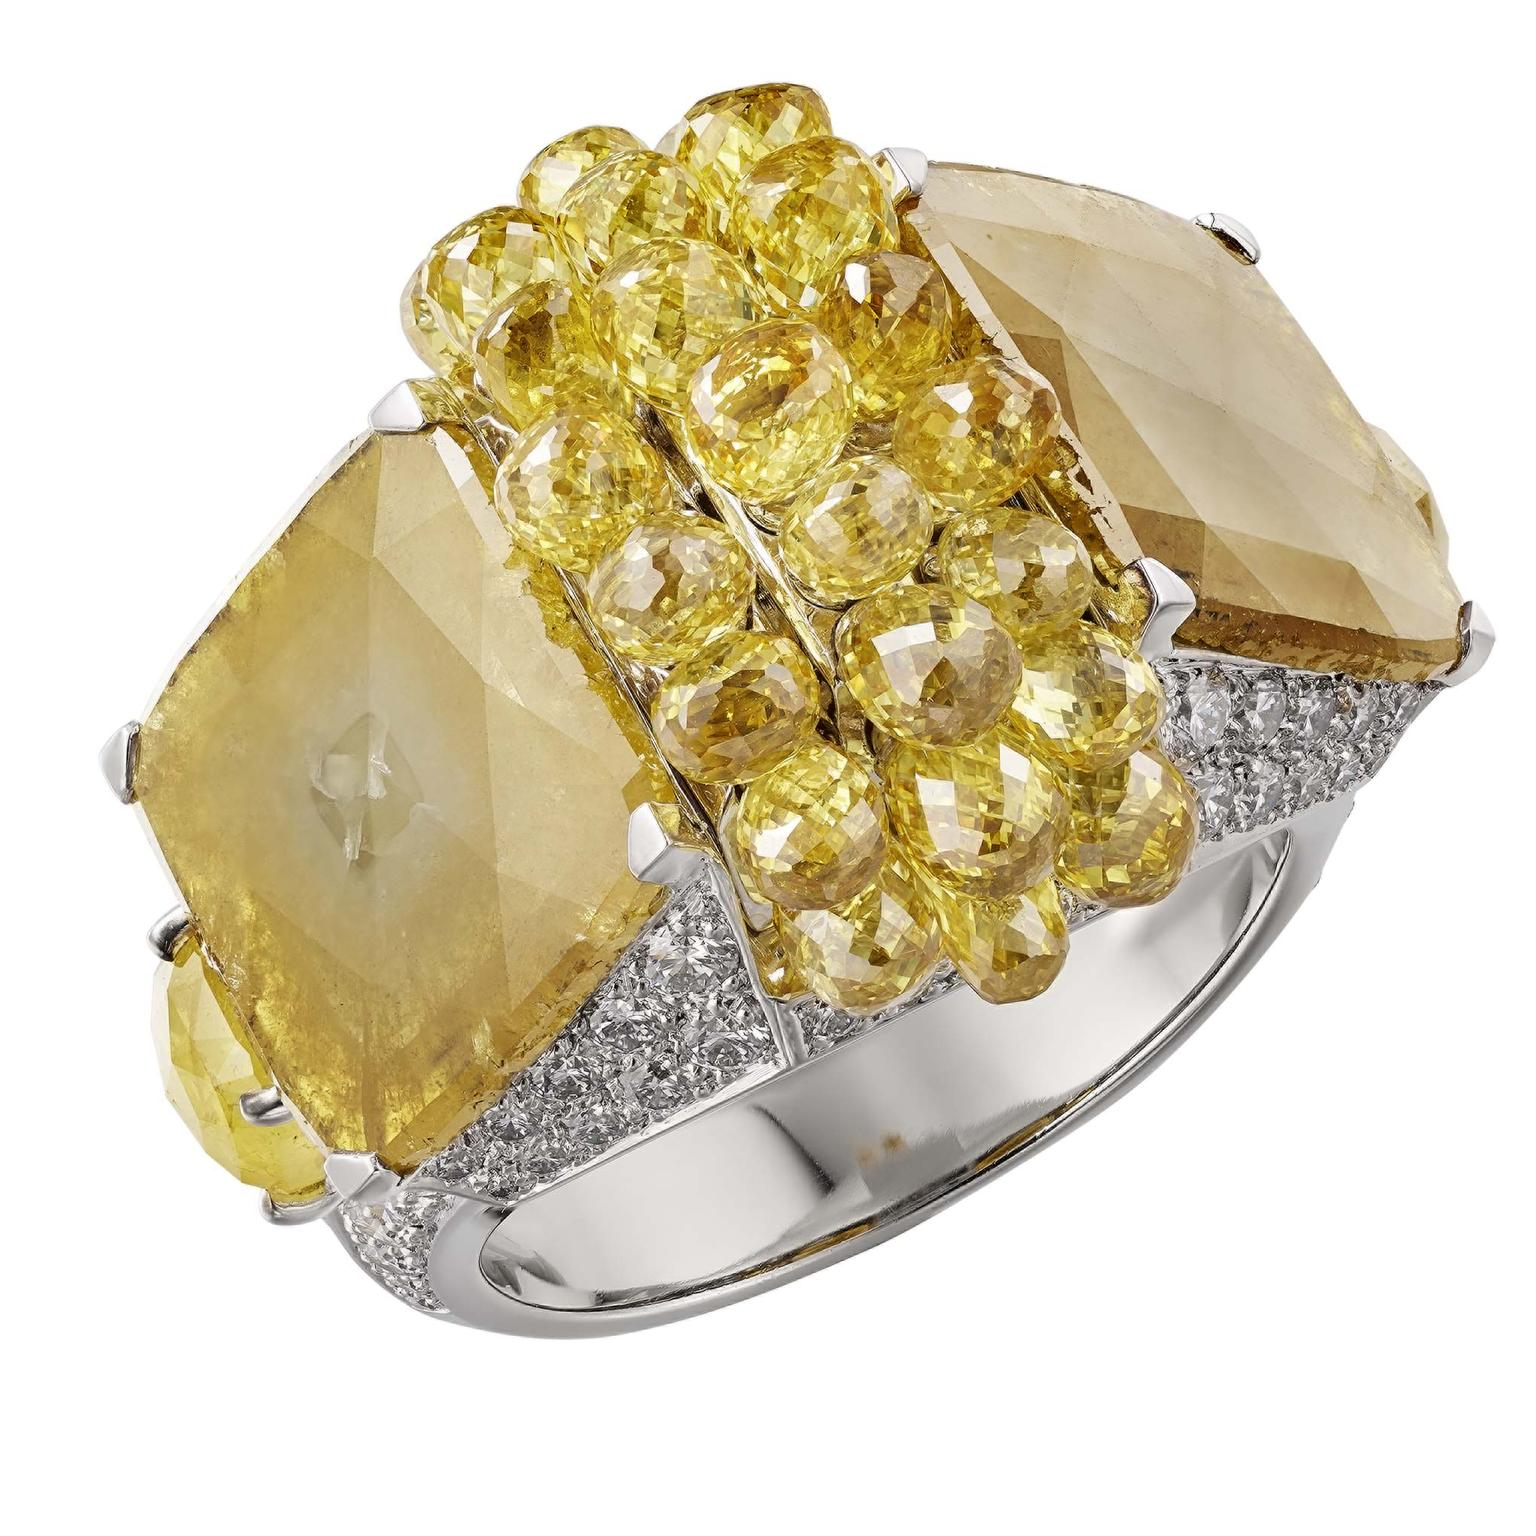 Cartier Magnitude Yuma ring with yellow diamonds